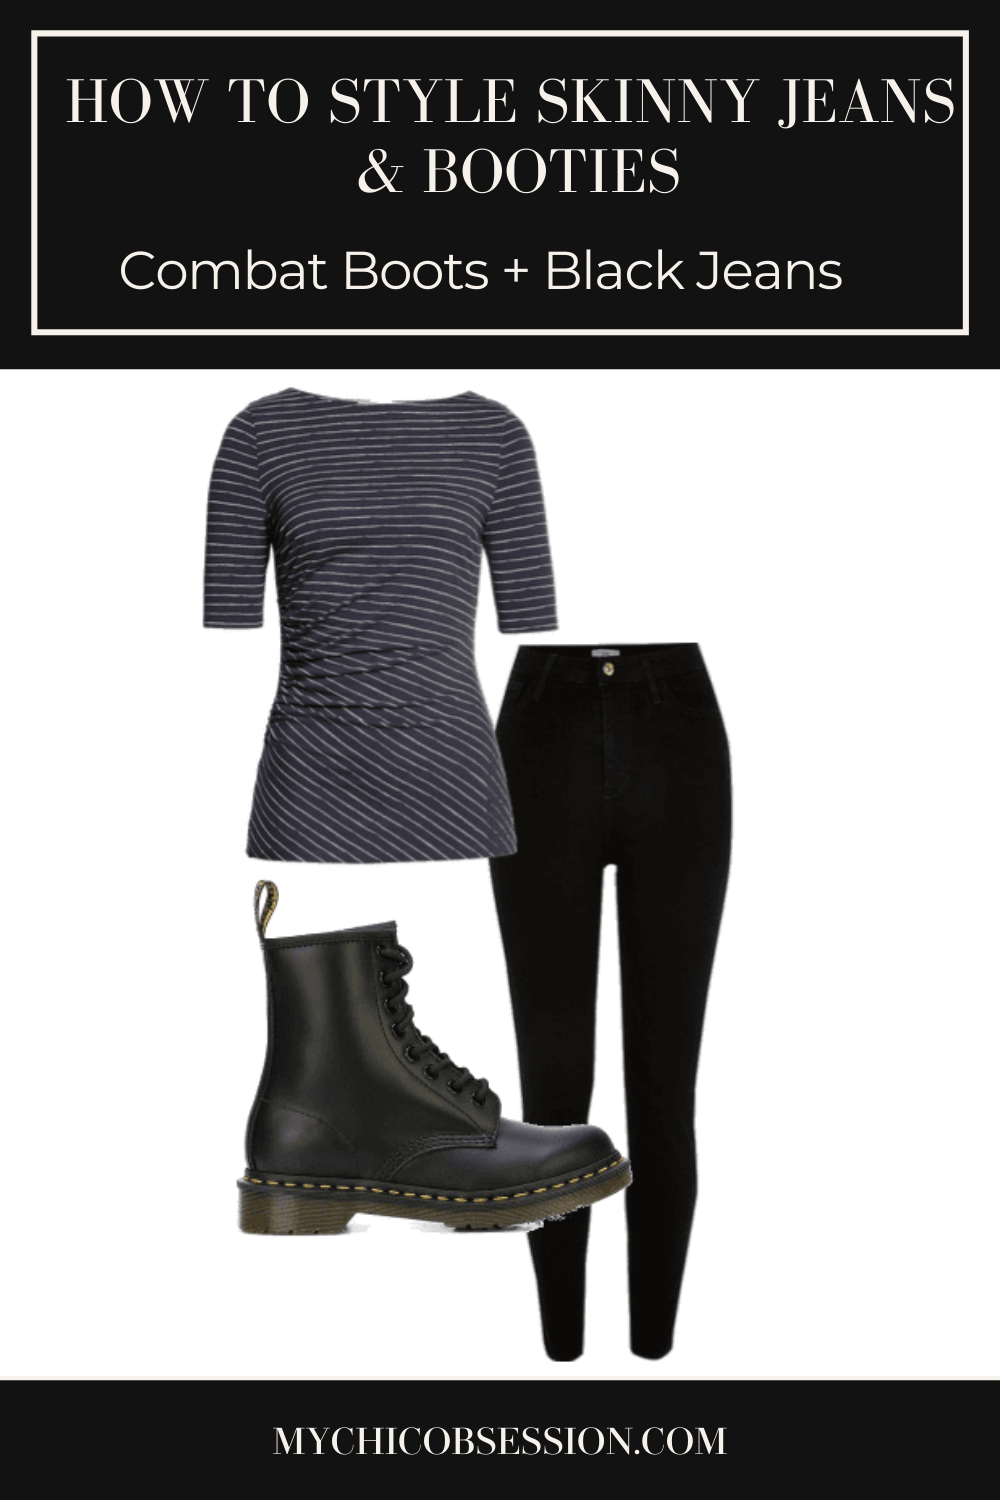 Black doc martens combat boots with black skinny jeans